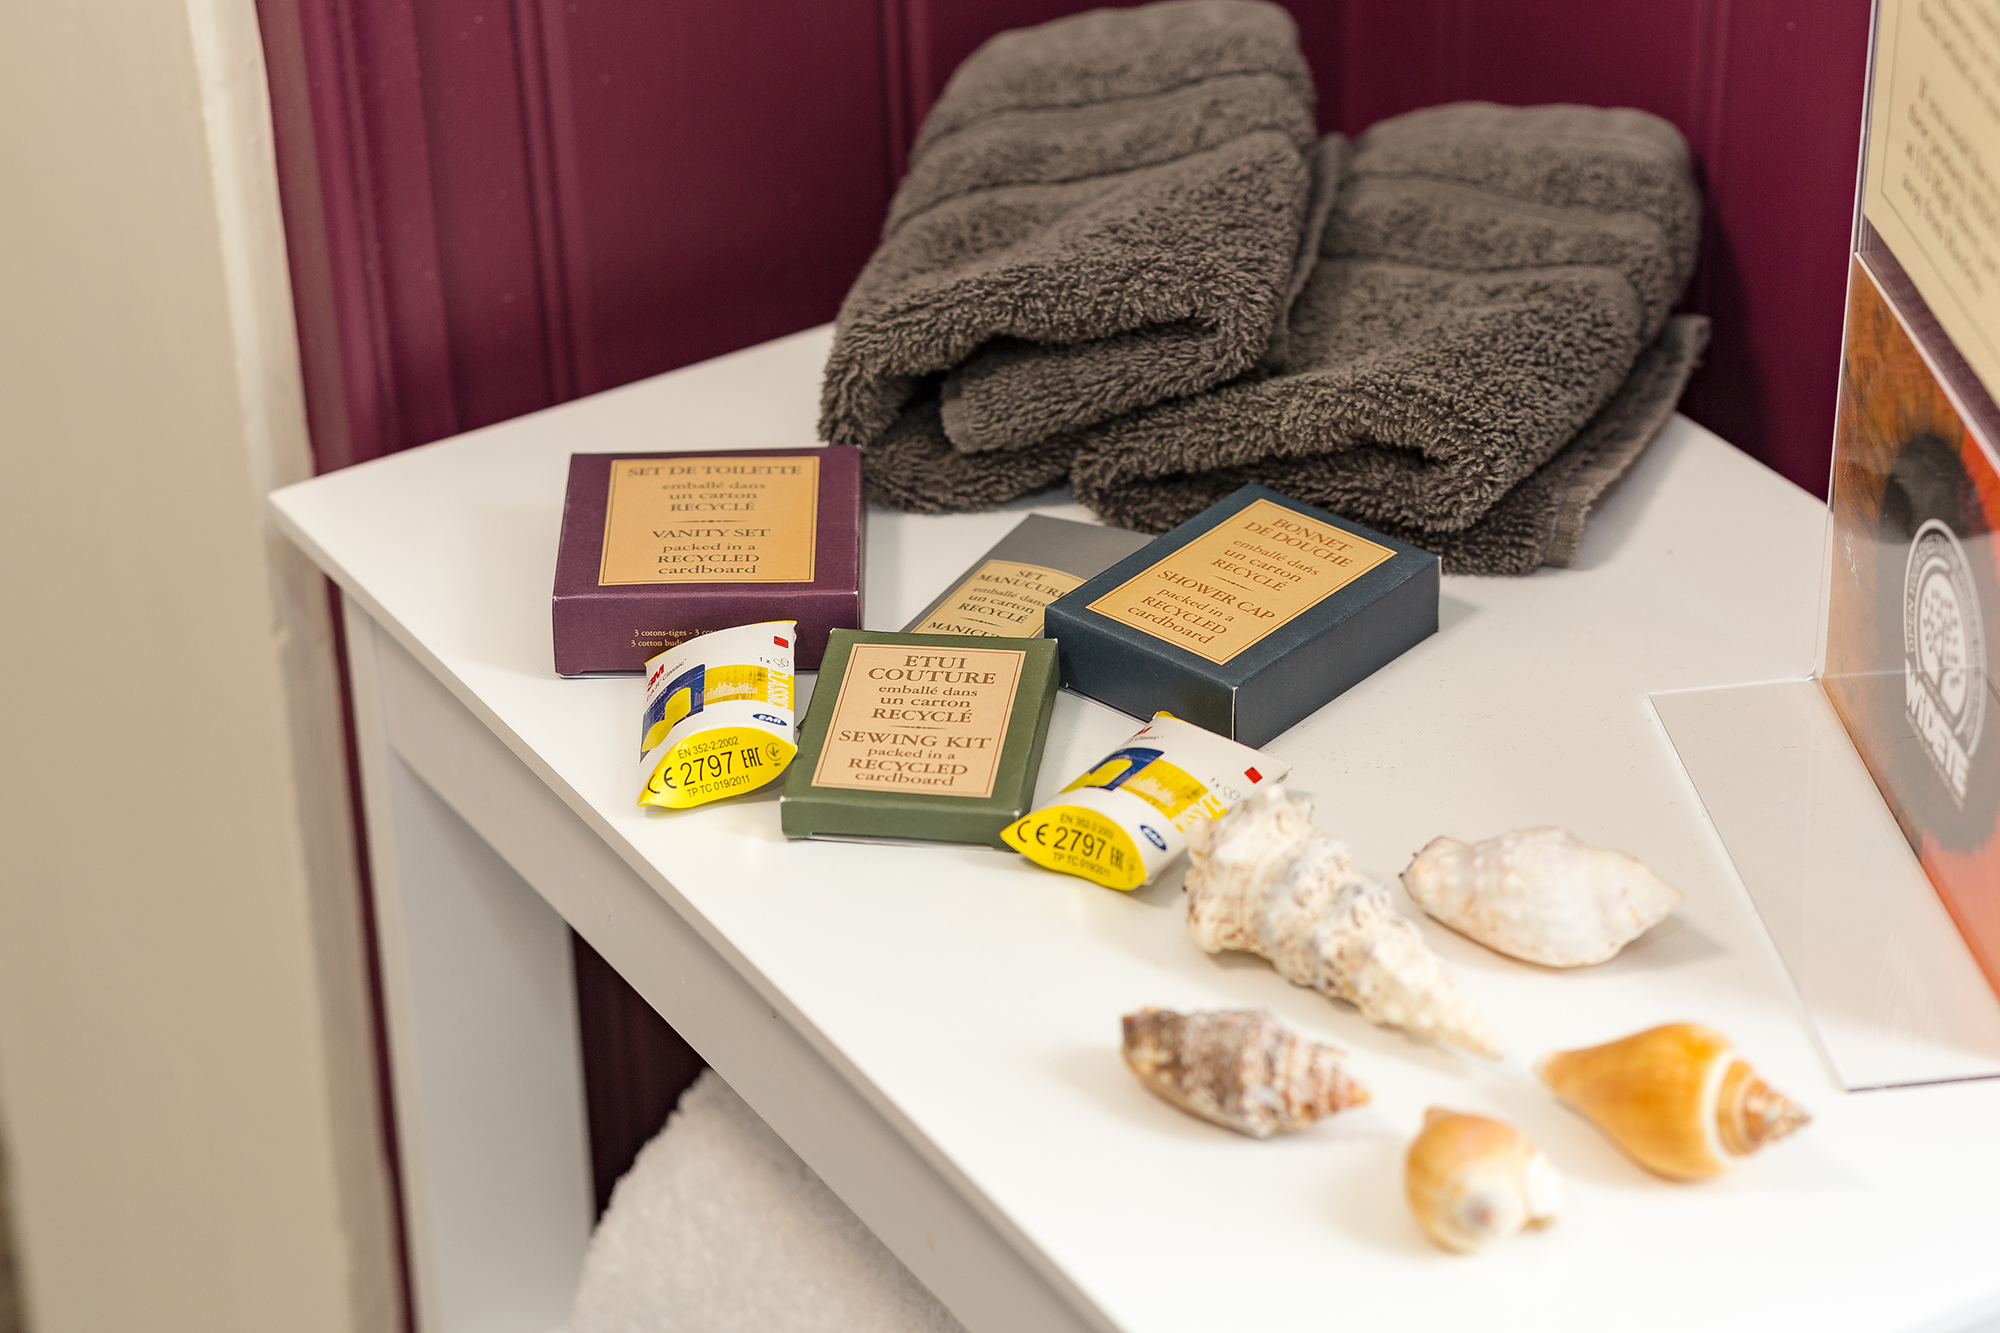 Products and towels